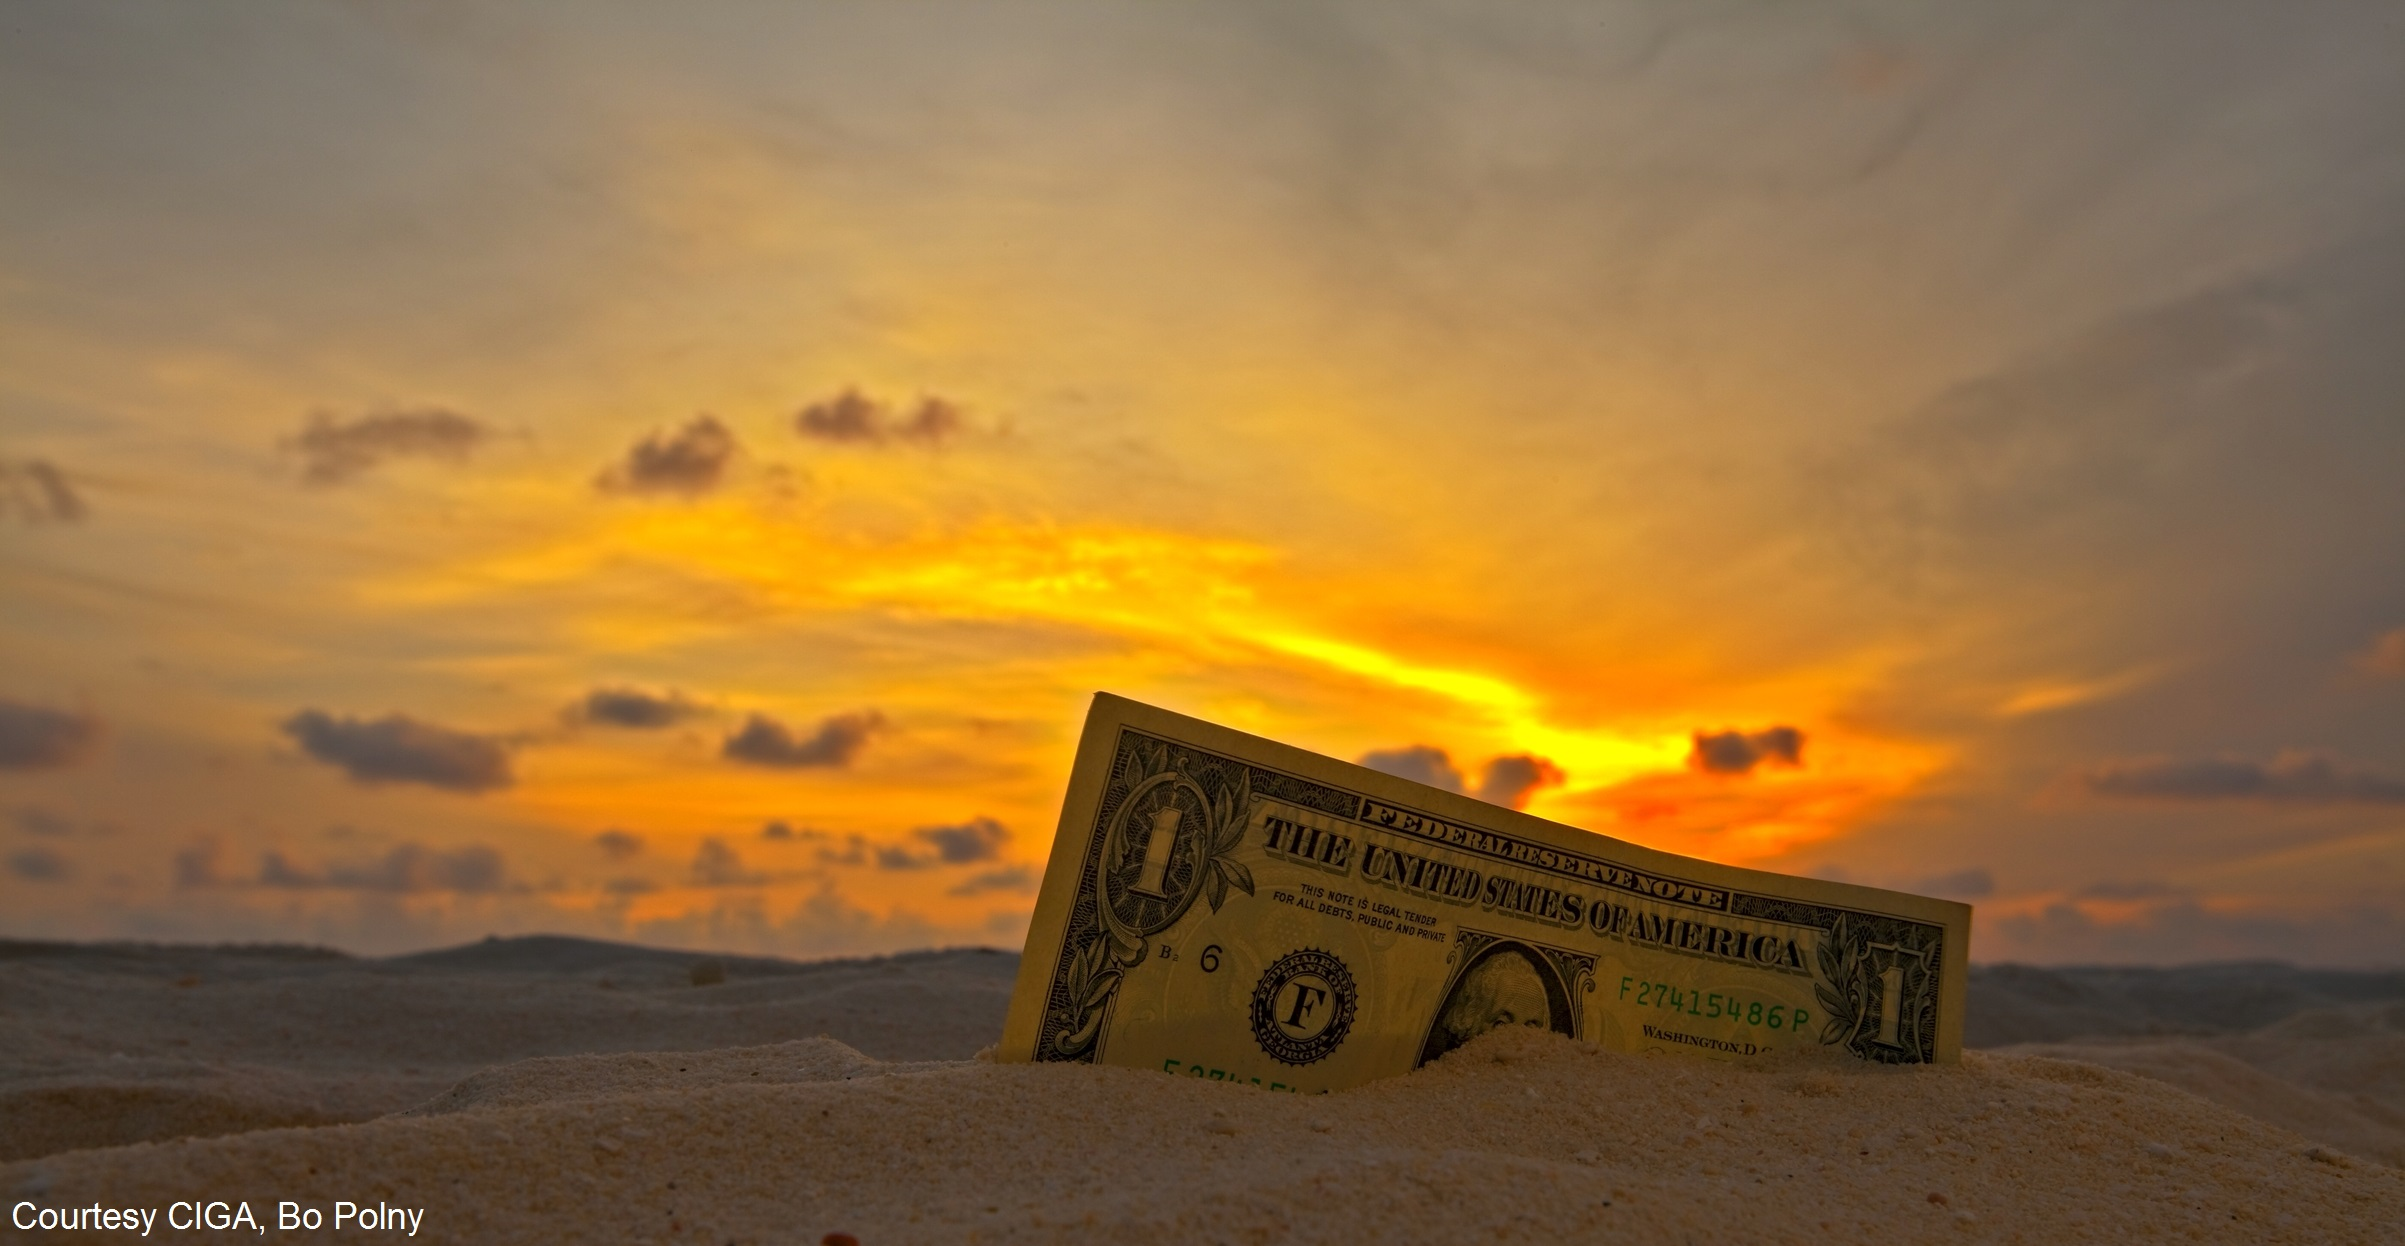 http://www.dreamstime.com/stock-photo-dollar-s-sunset-image17199450